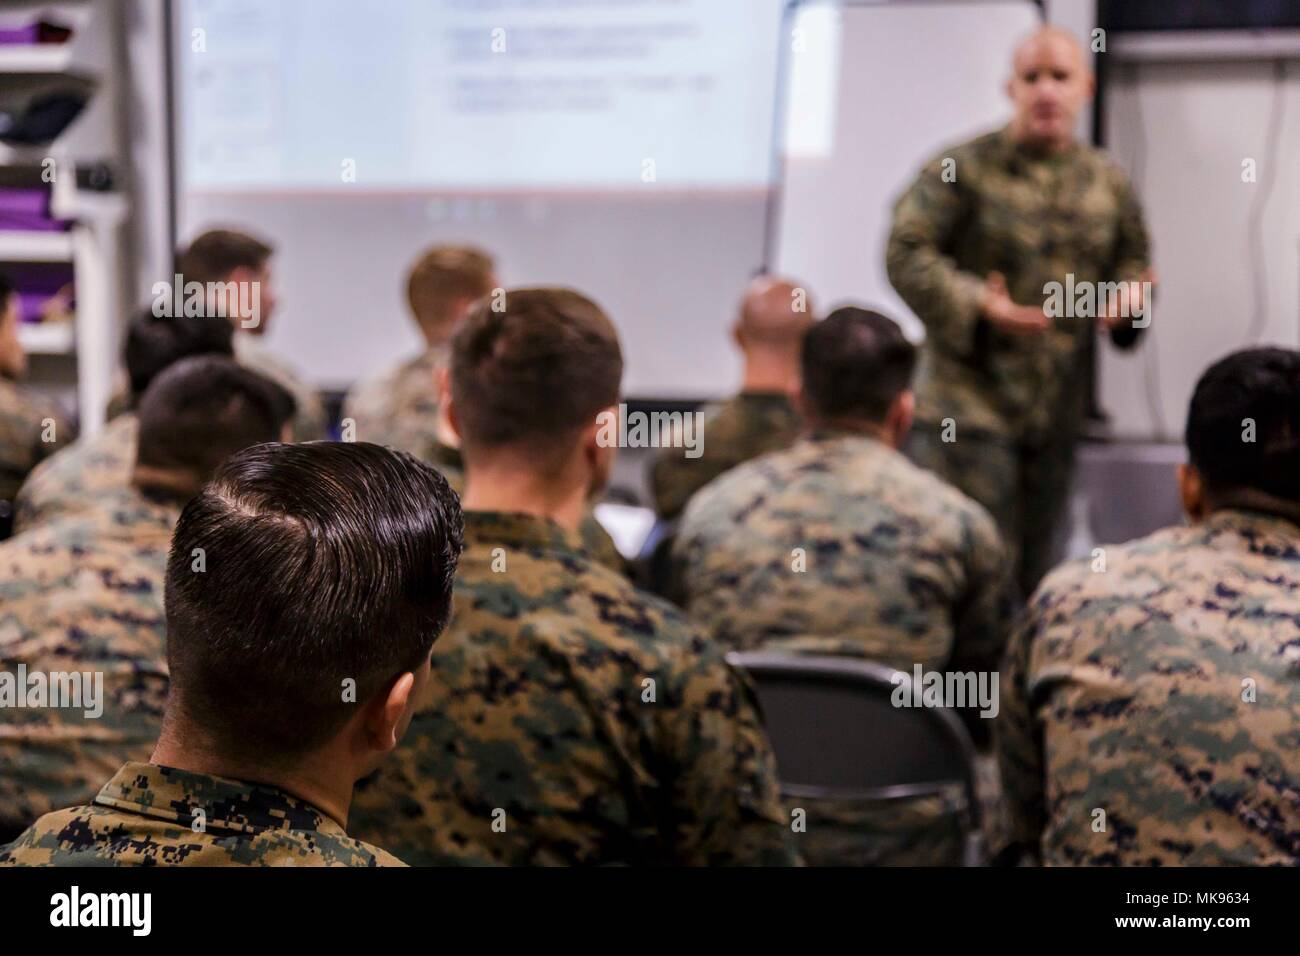 Career Oriented Stock Photos & Career Oriented Stock Images - Alamy